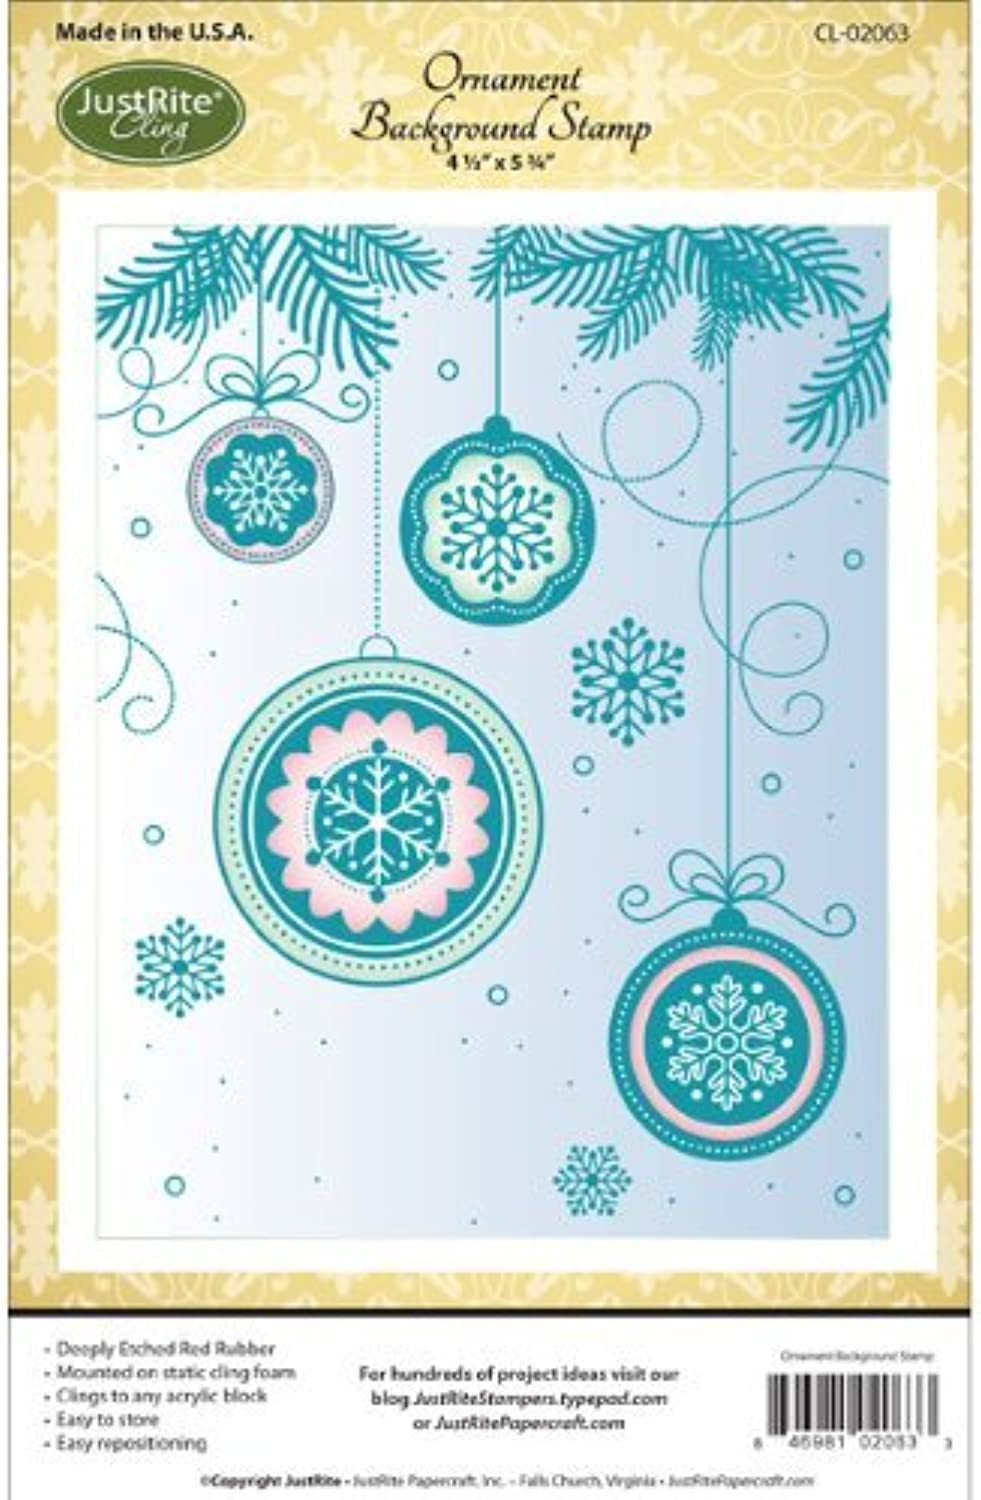 Justrite Cling Background Stamp, 4.5-Inch x 5.75-Inch, Ornament Ornament Ornament by Justrite B0149HBOB8 | Billig ideal  05377d